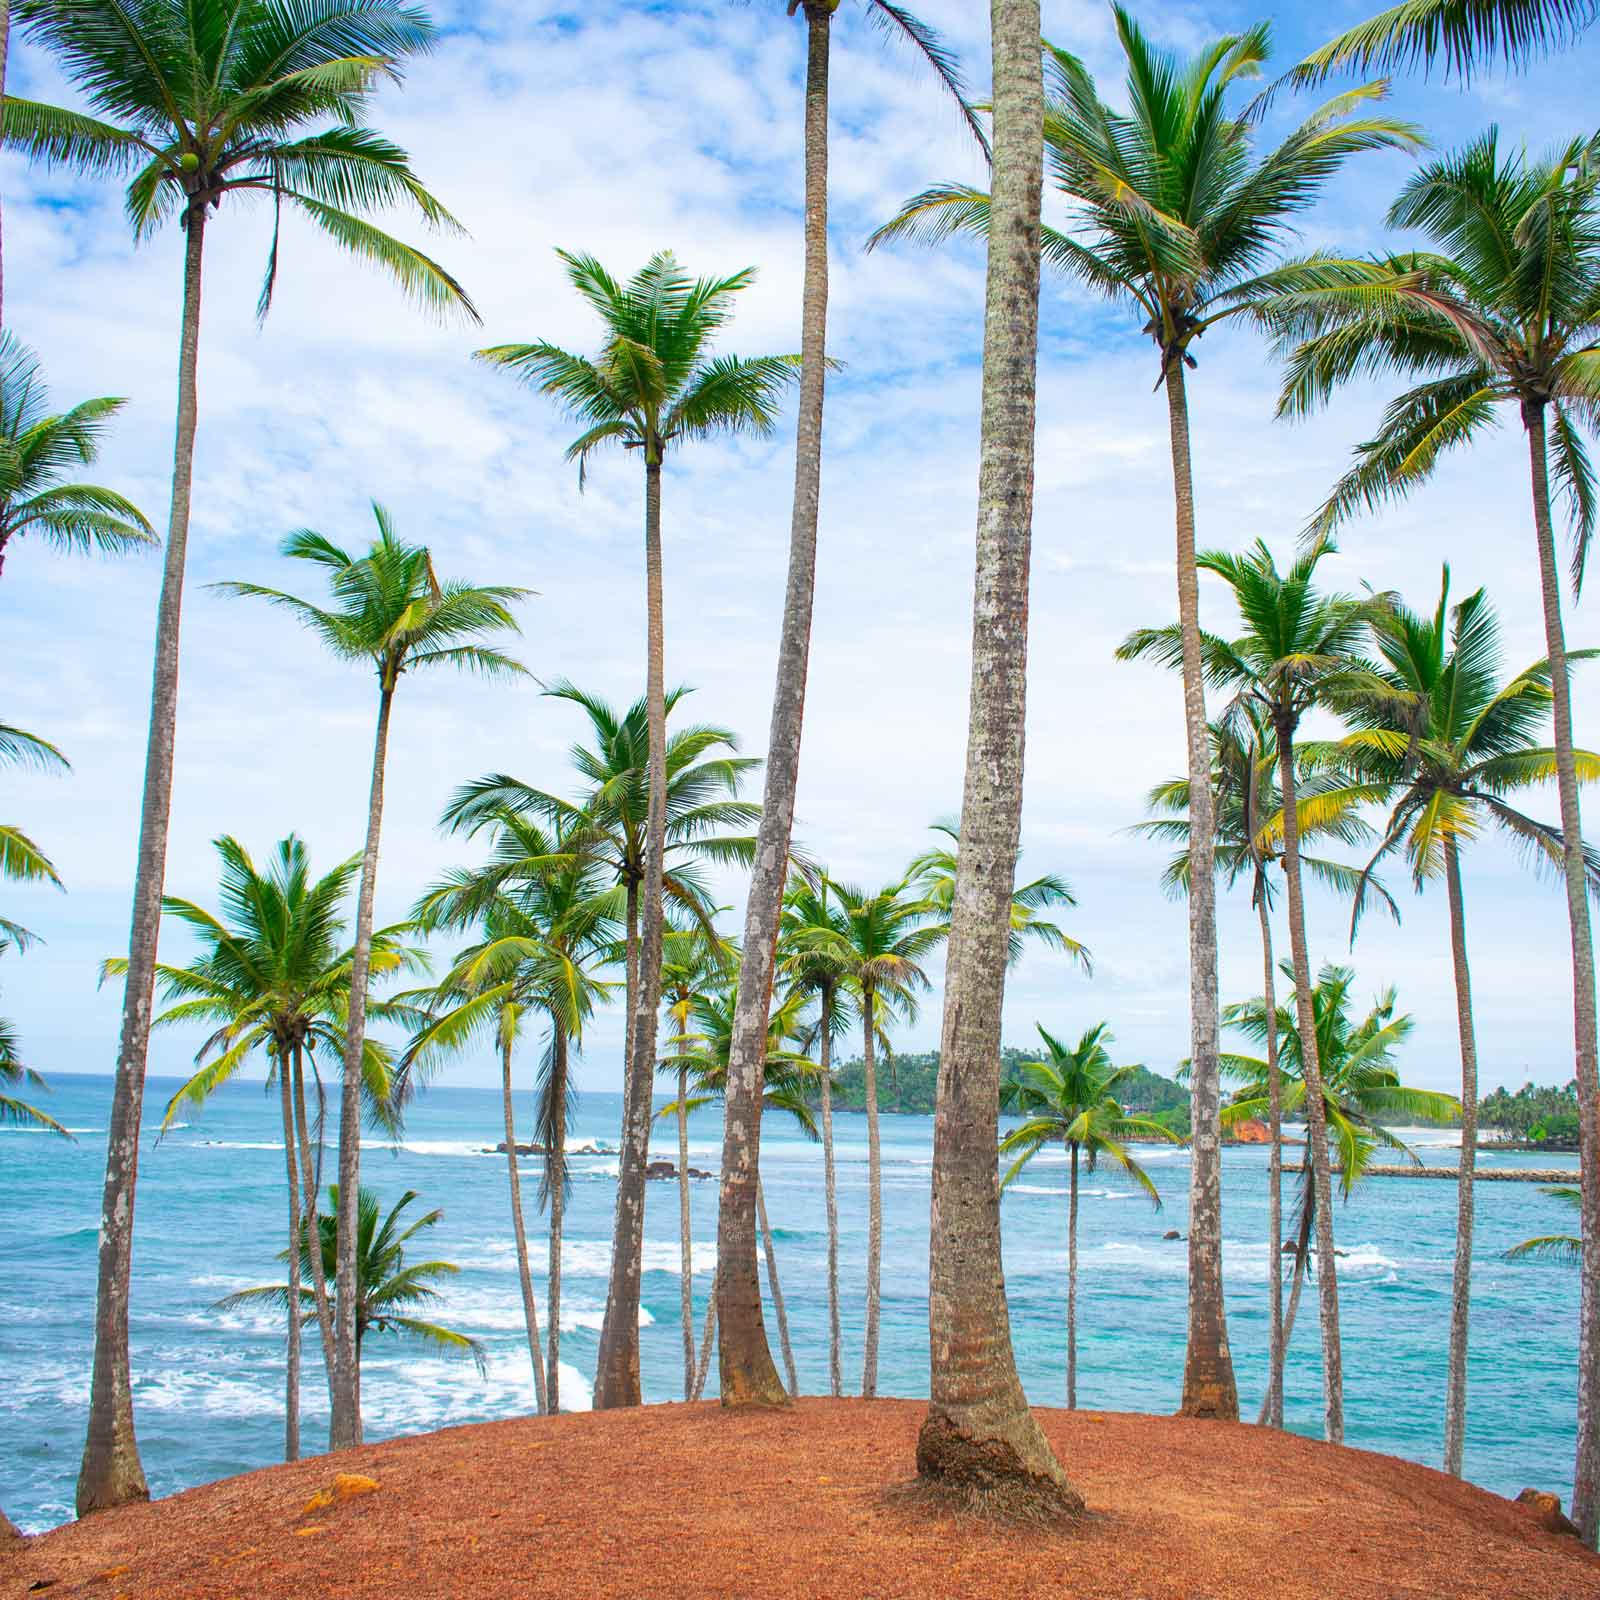 Photo of a hill with palm trees overlooking the ocean.